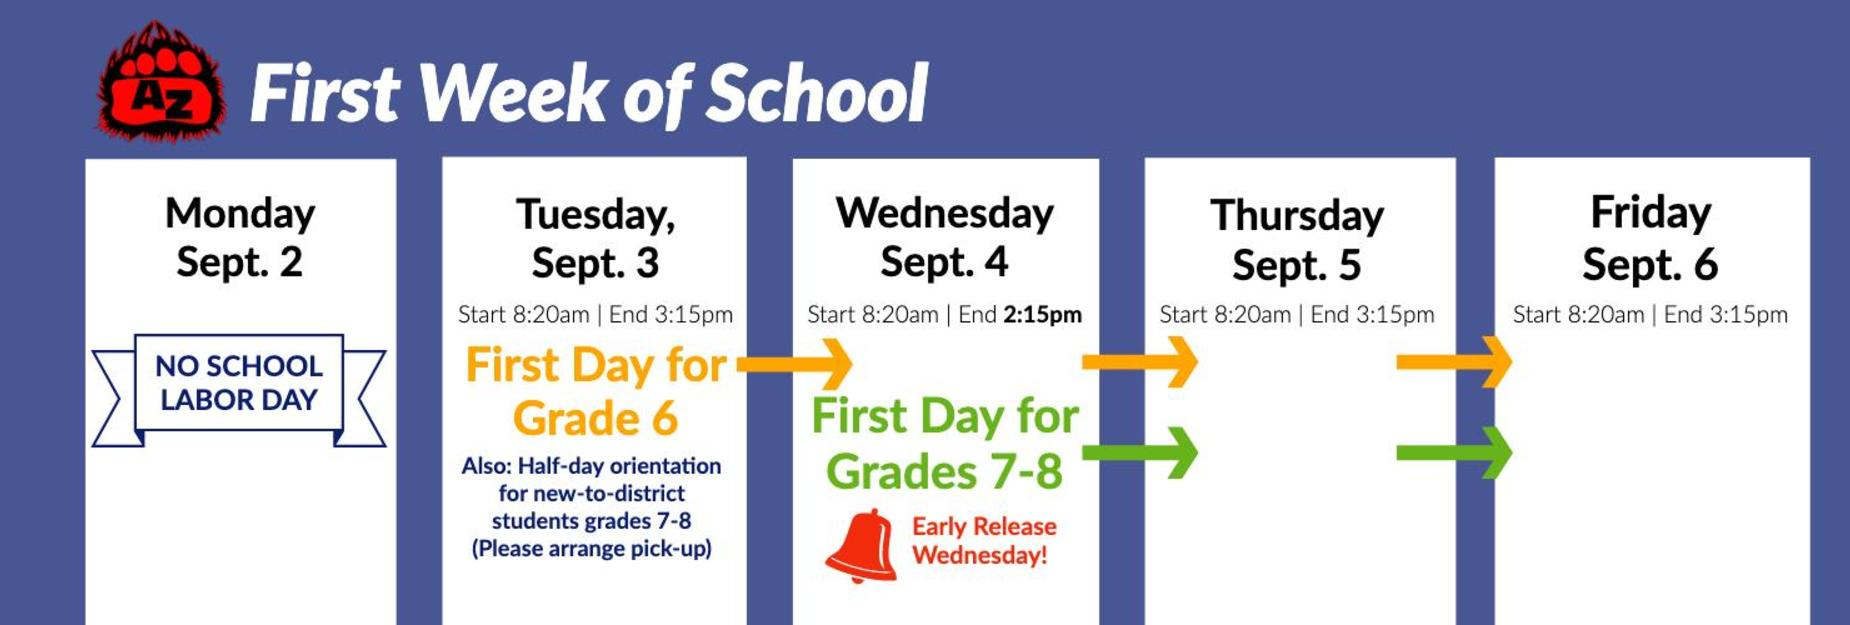 First Week of School infographic